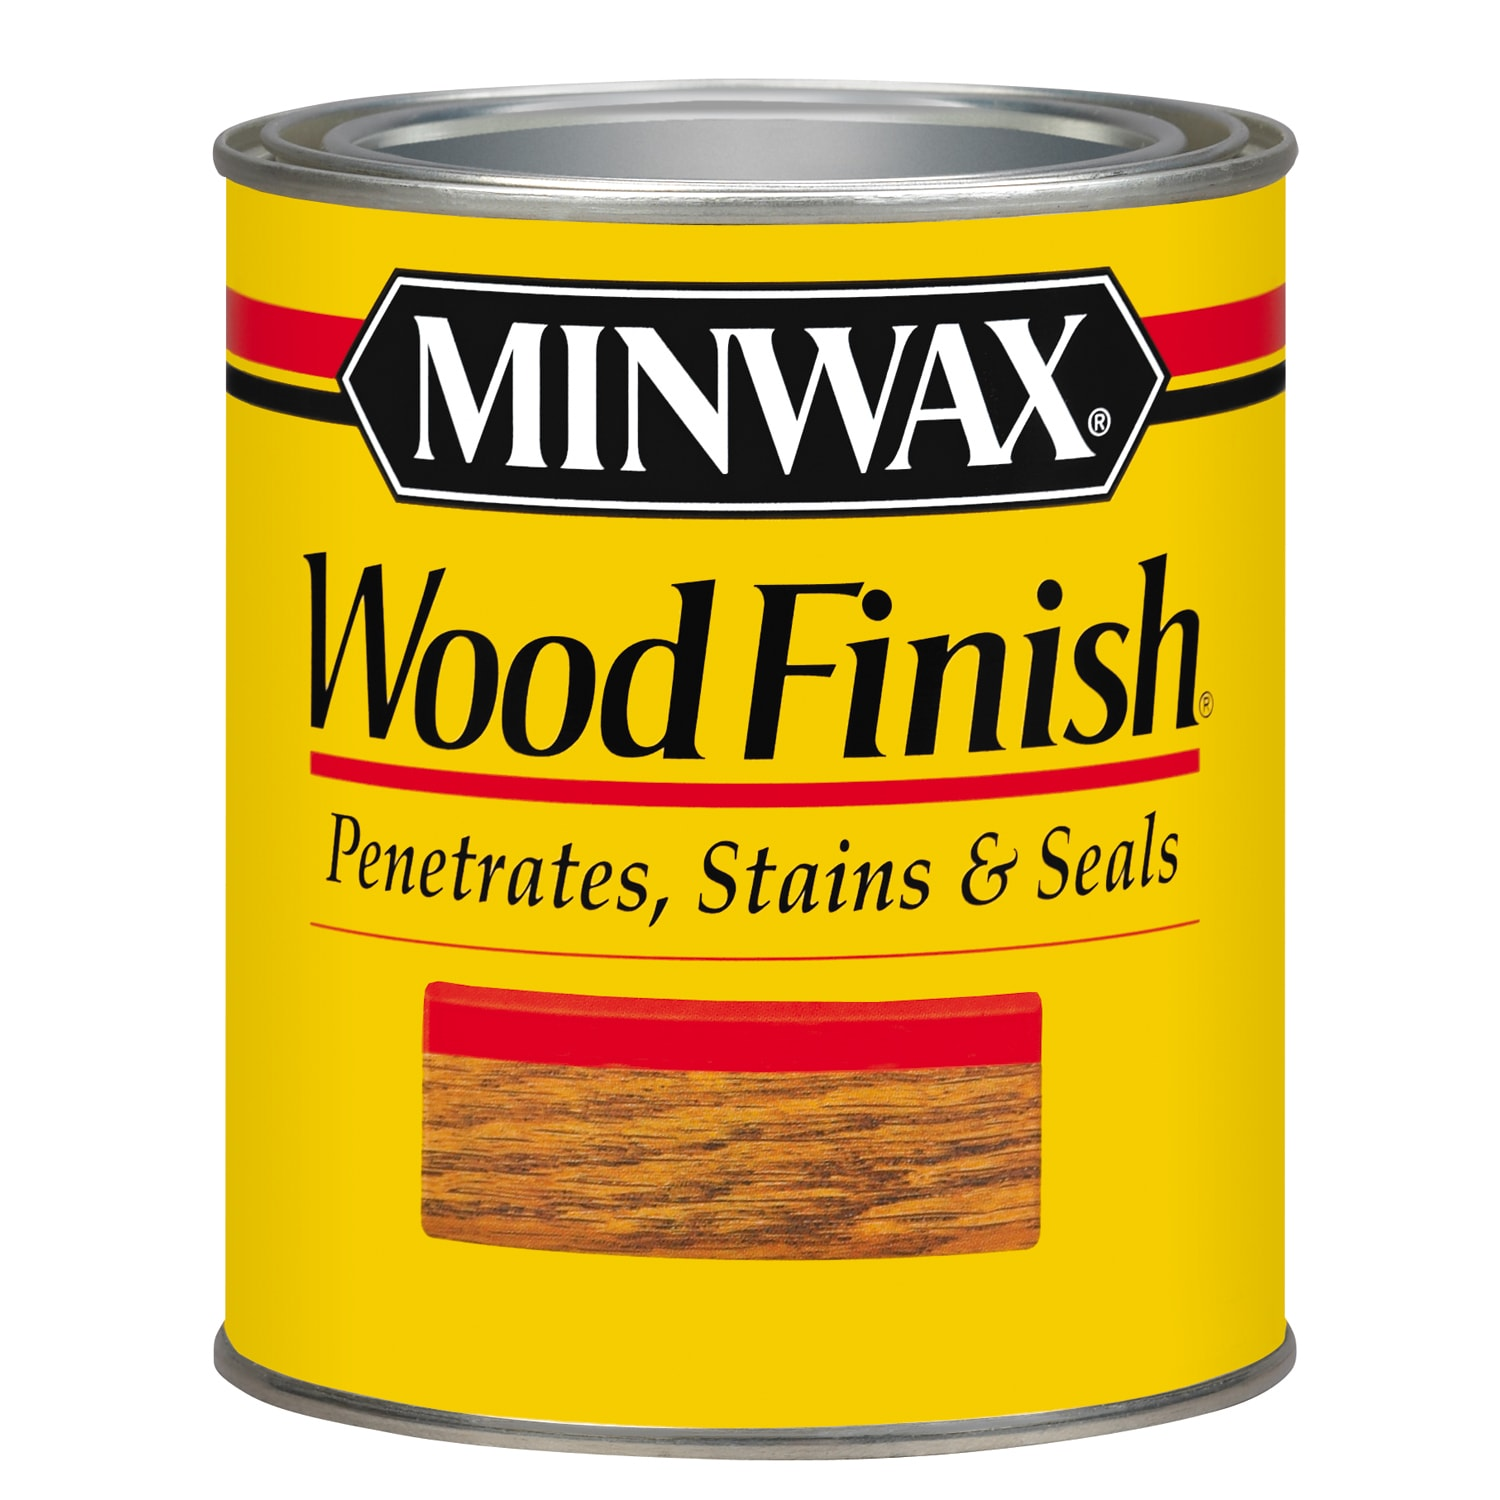 Minwax 70040 1 Quart Red Oak Wood Finish Interior Wood St...